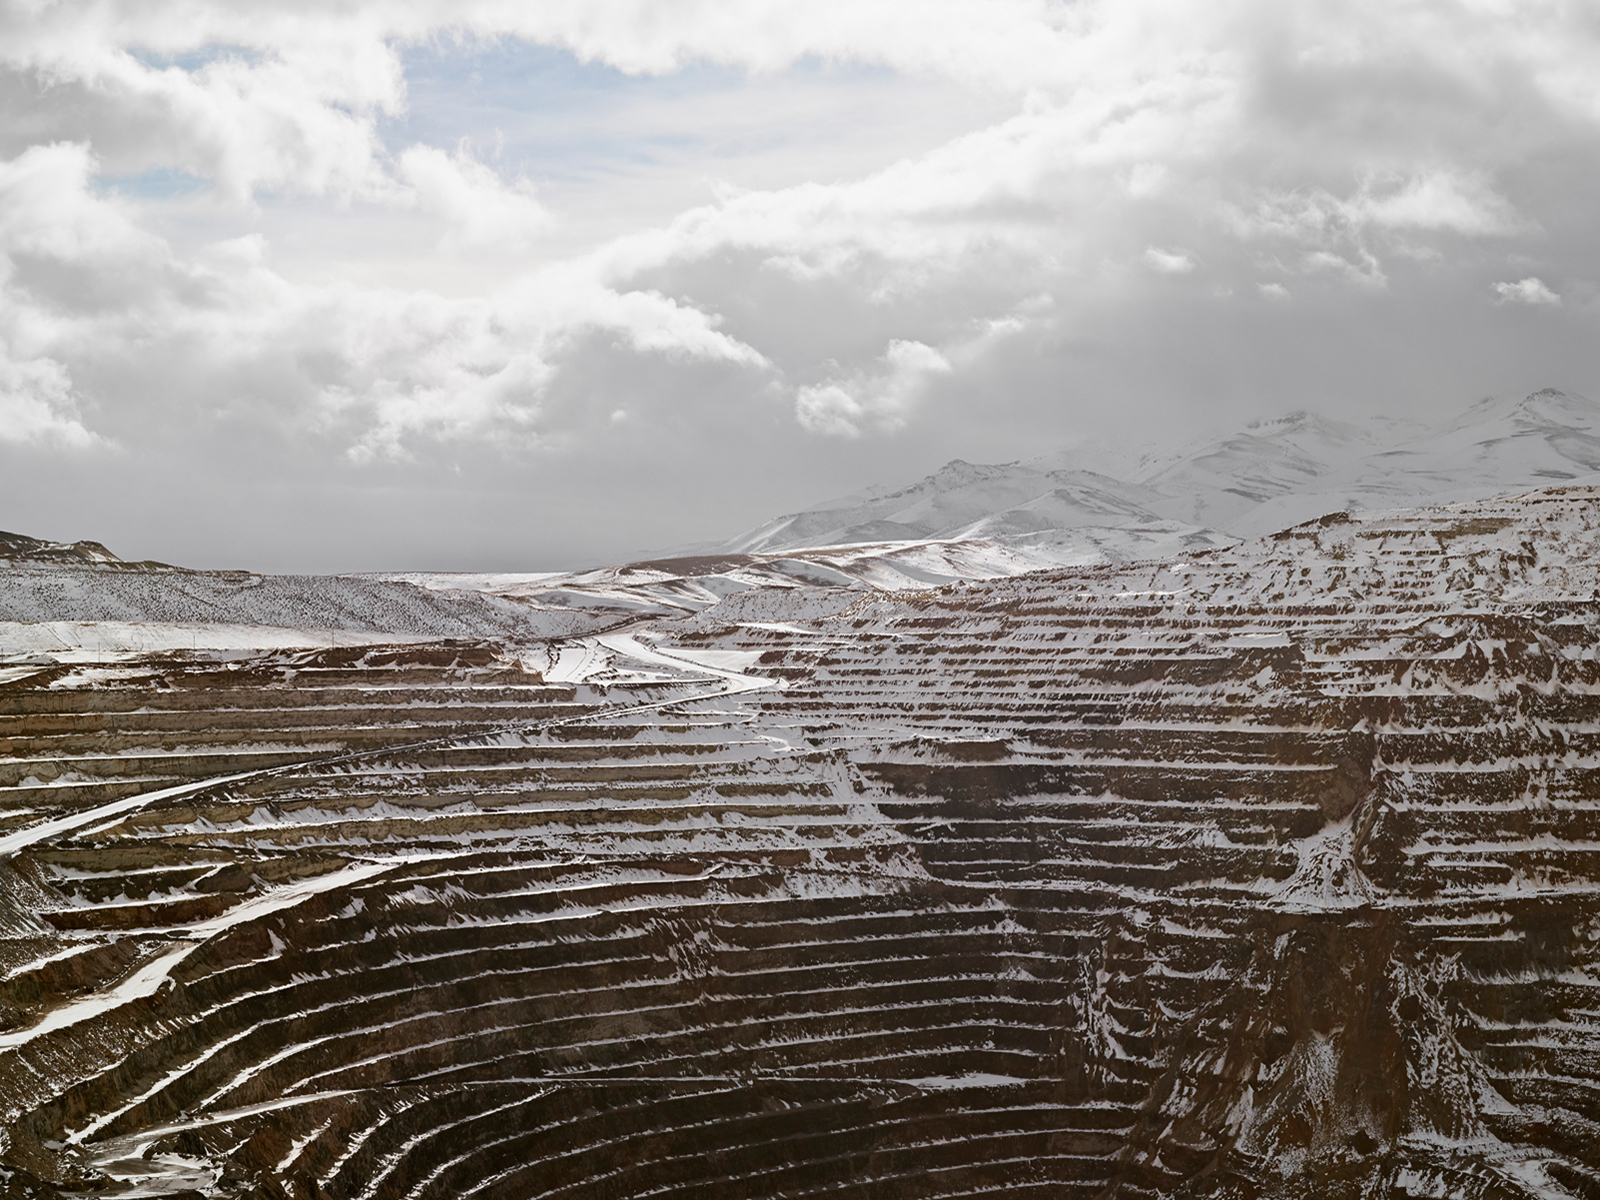 Open Pit, Newmount Mining Corporation, Carlin